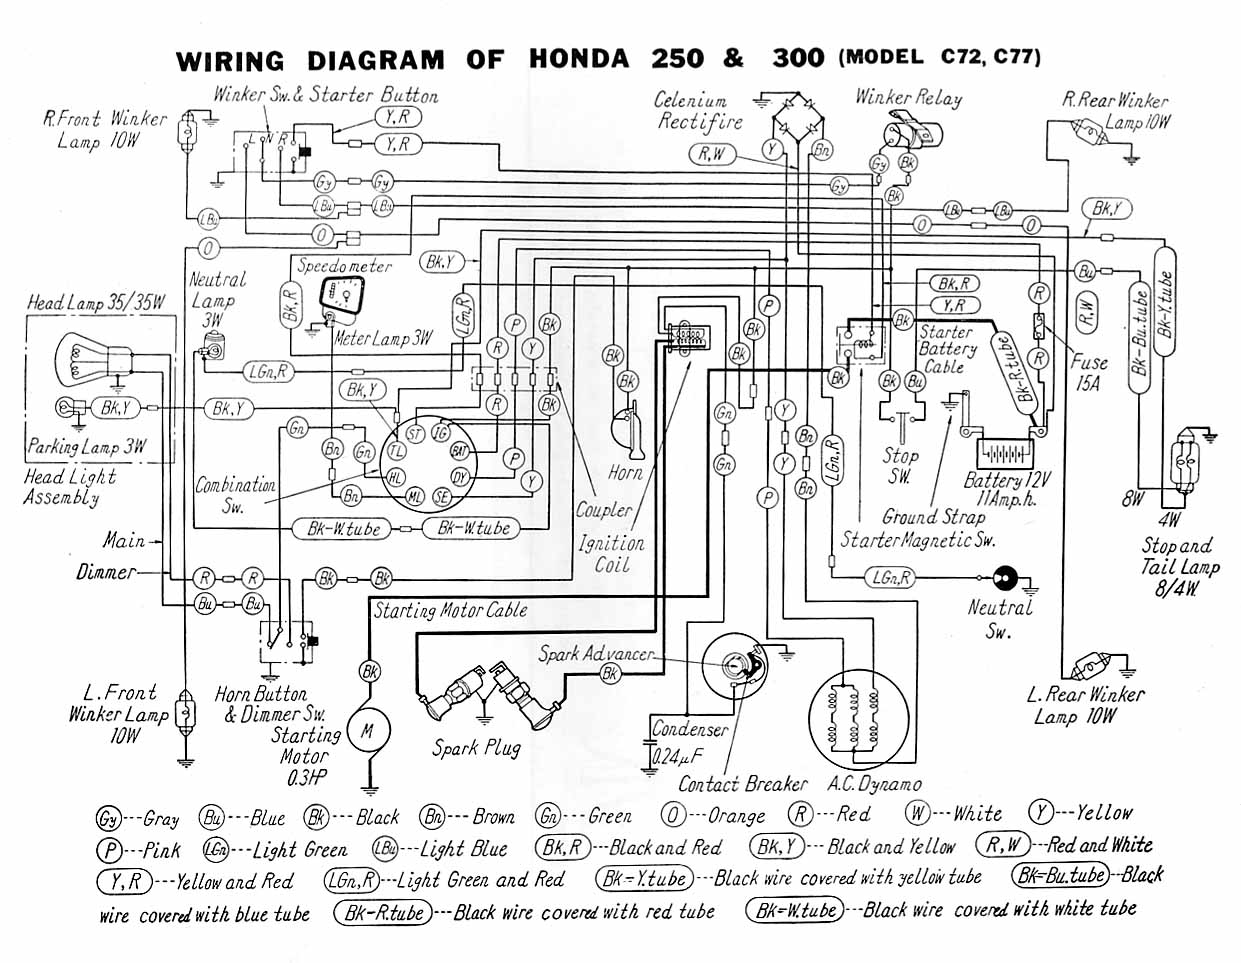 Honda Cb750k1 Electrical Wiring Diagram - Wiring Diagrams •